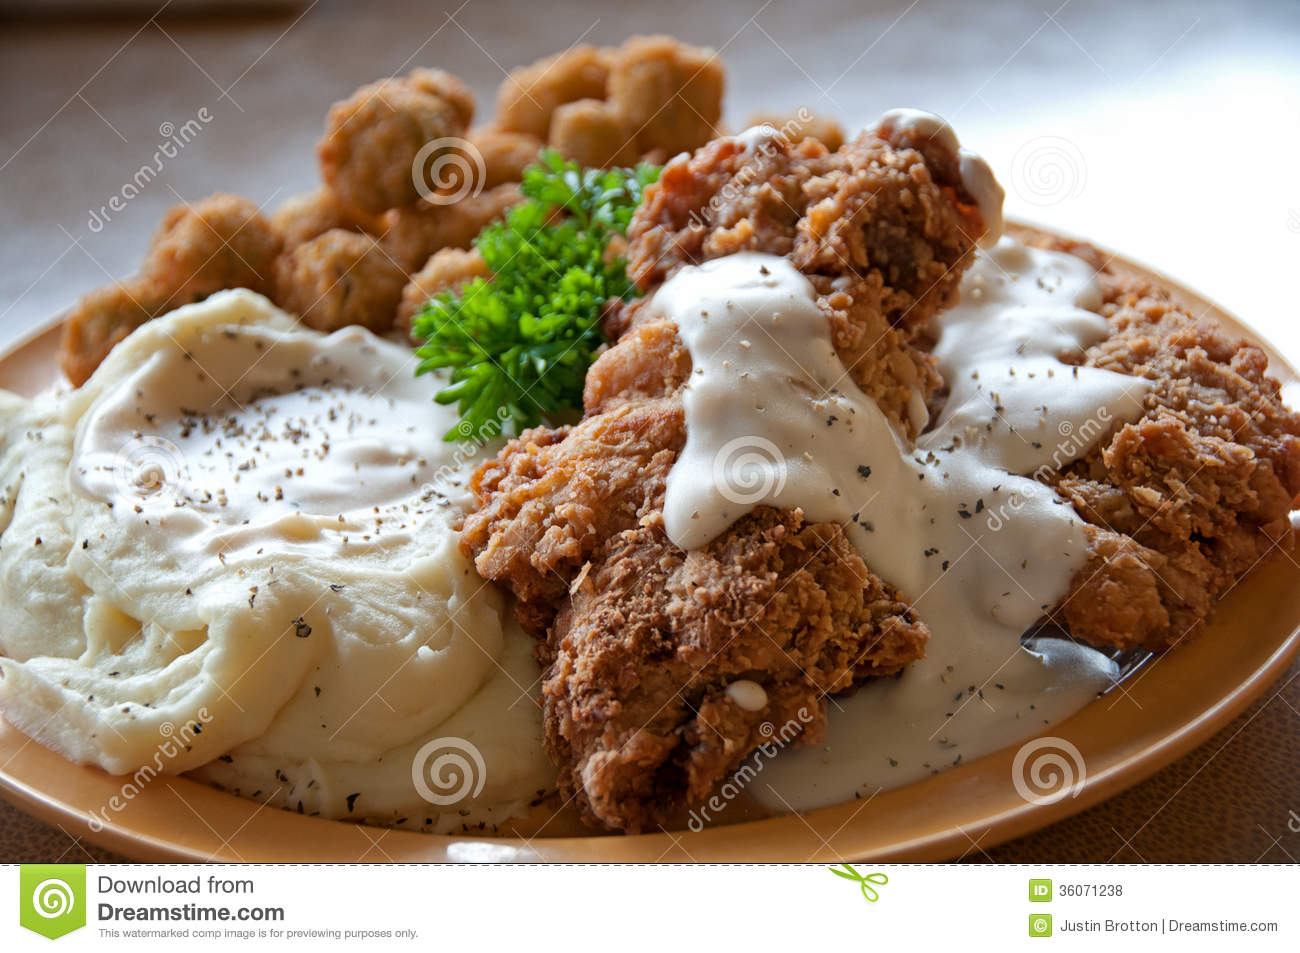 fried steak sailing the cream gravy river chicken fried steak gravy ...